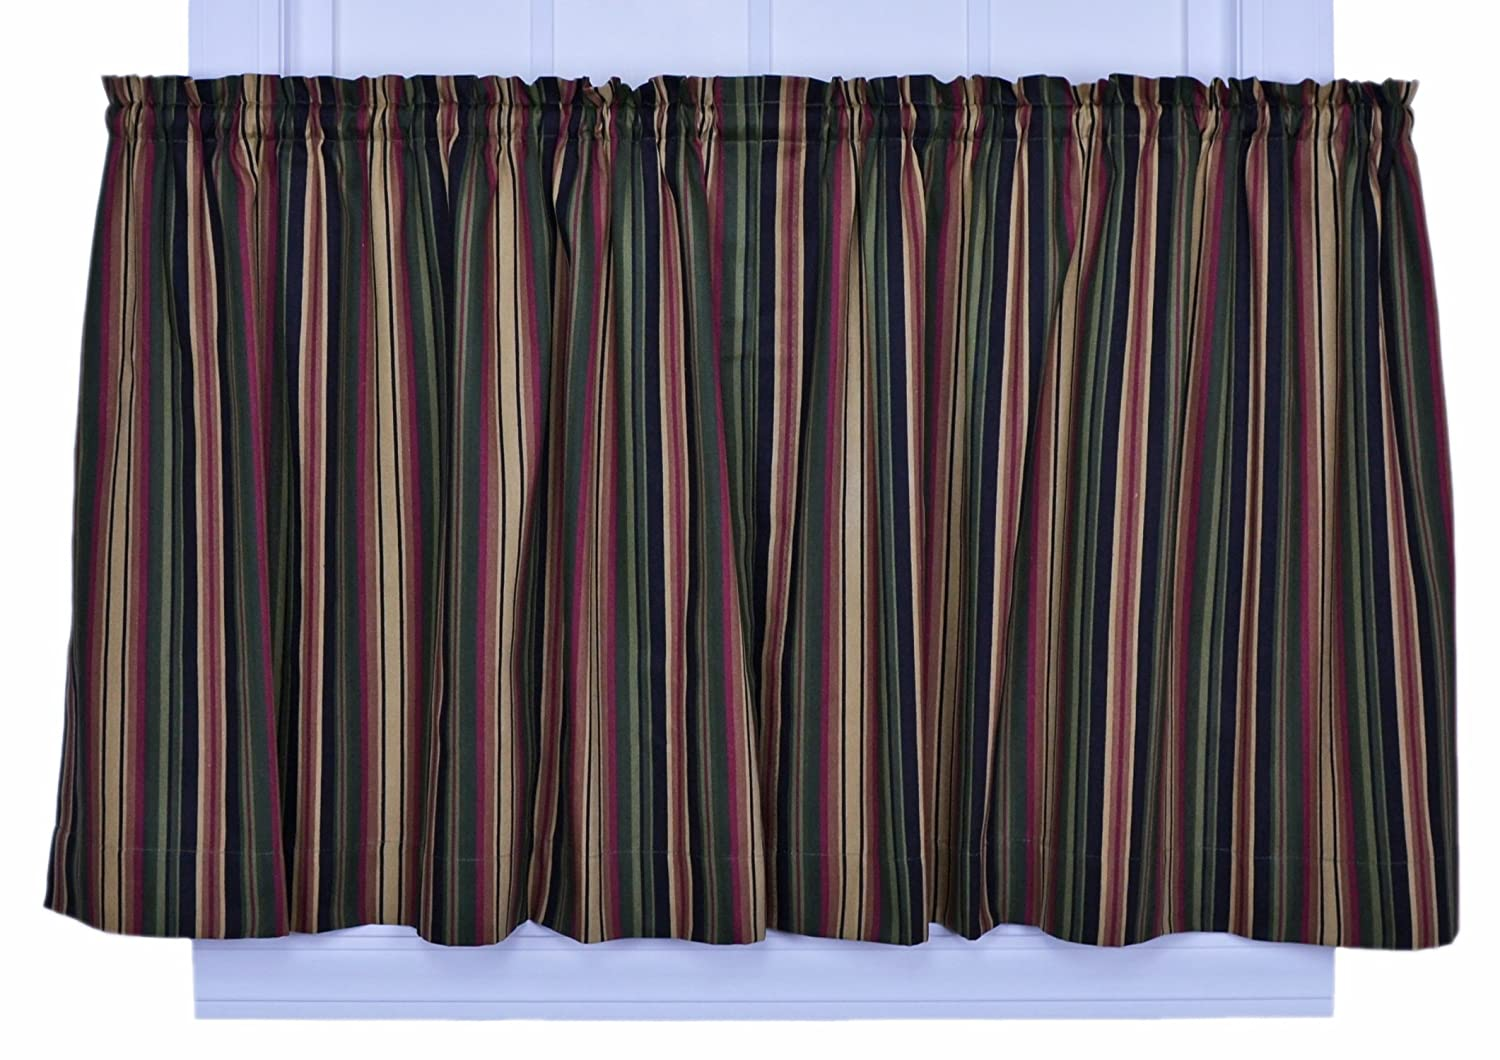 Ellis Curtain Montego Stripe 82-Inch by 24-Inch Tailored Tier Curtains, Black